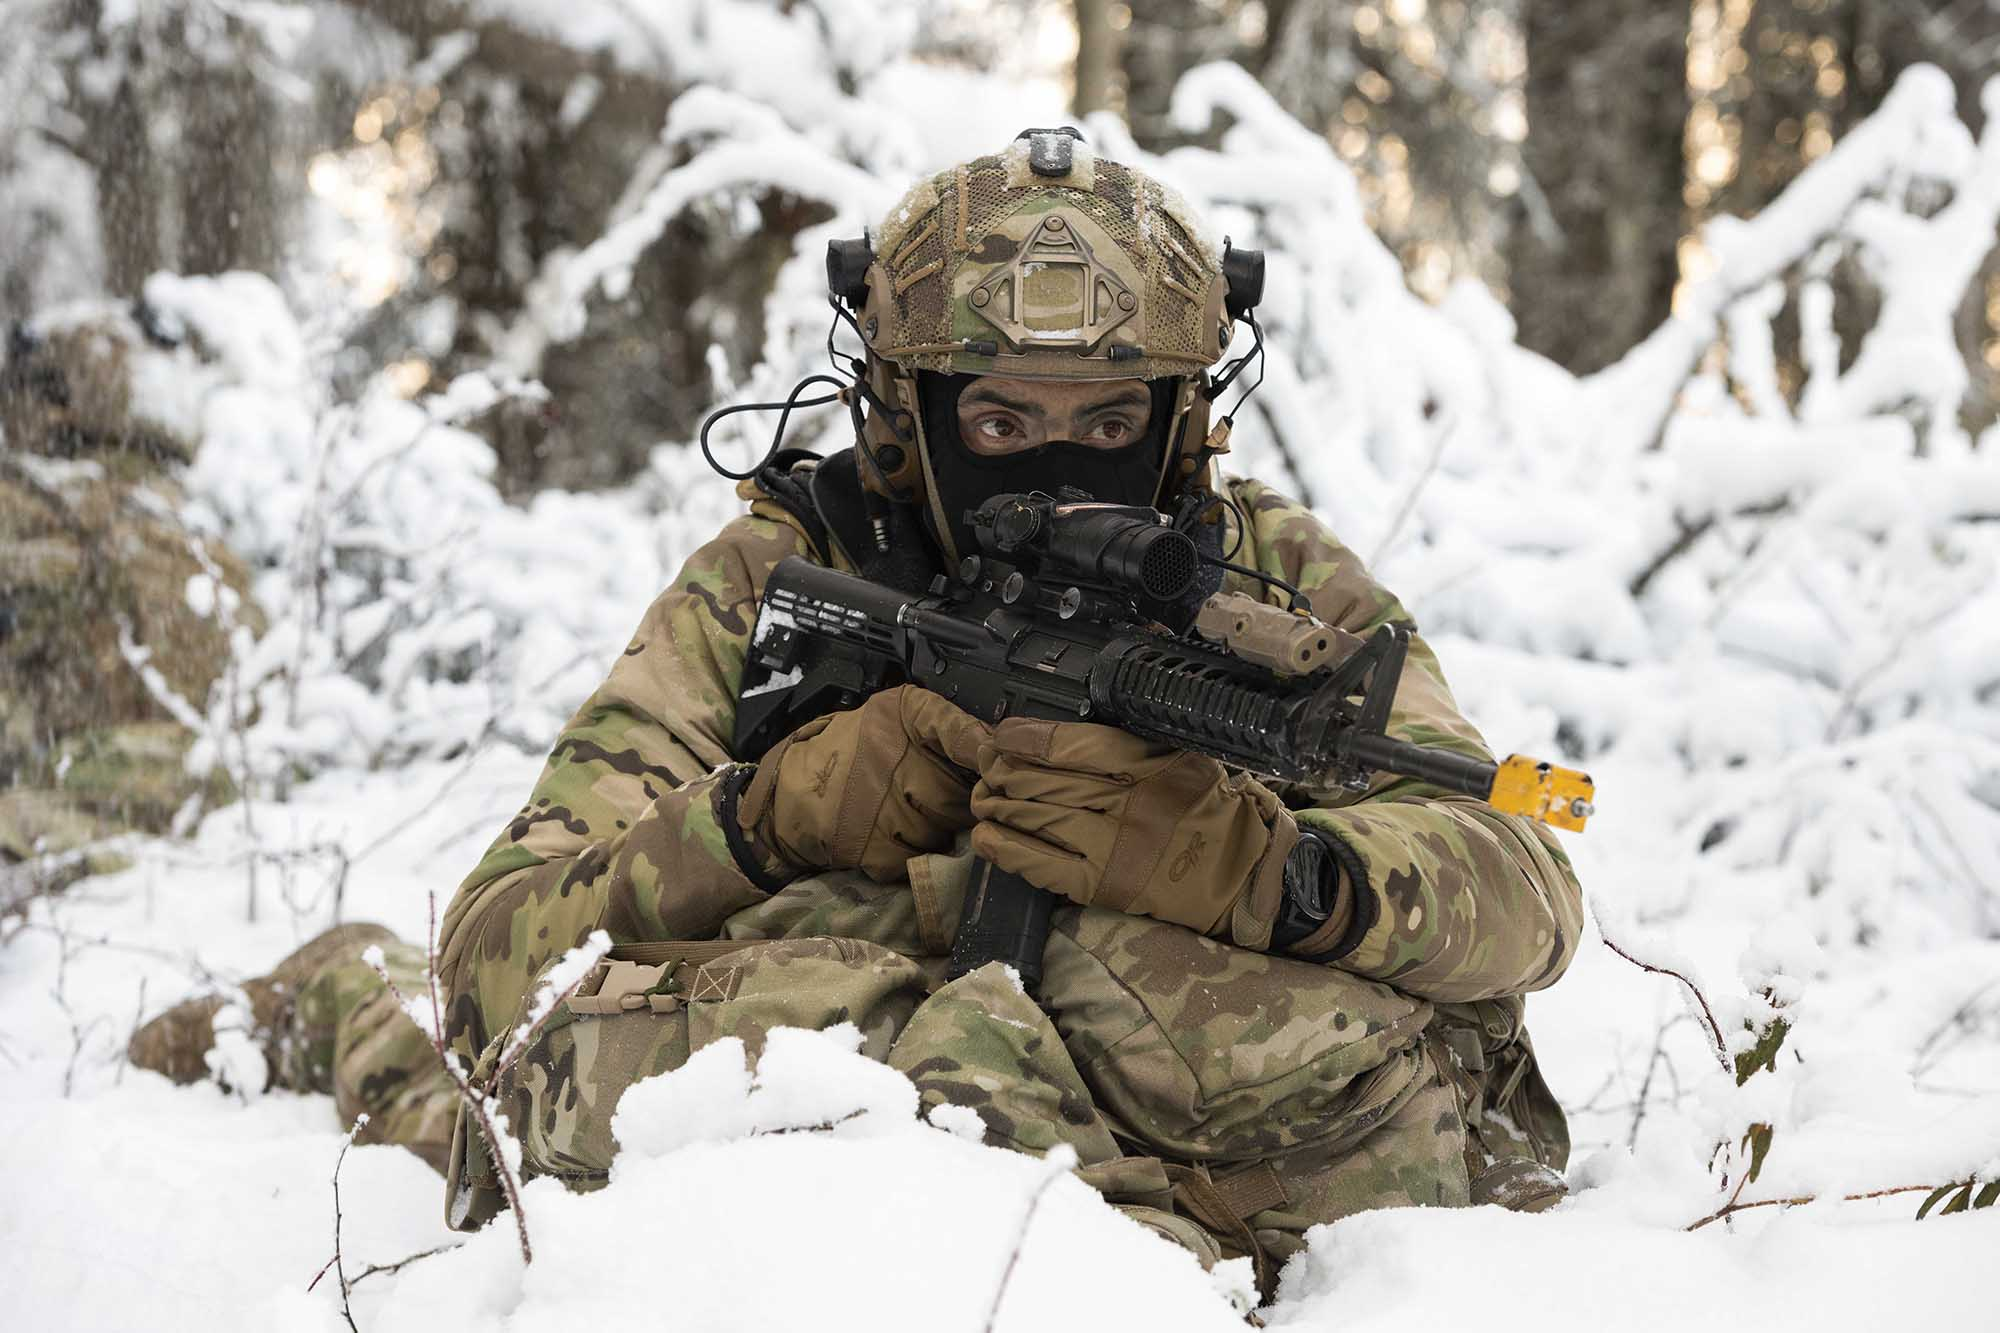 Senior Airman Bryan Guerrero, a tactical air control party apprentice assigned to the 3rd Air Support Operations Squadron, provides security during a patrol halt while conducting small unit training at Joint Base Elmendorf-Richardson, Alaska, Nov. 18, 2020. (Alejandro Pena/Air Force)